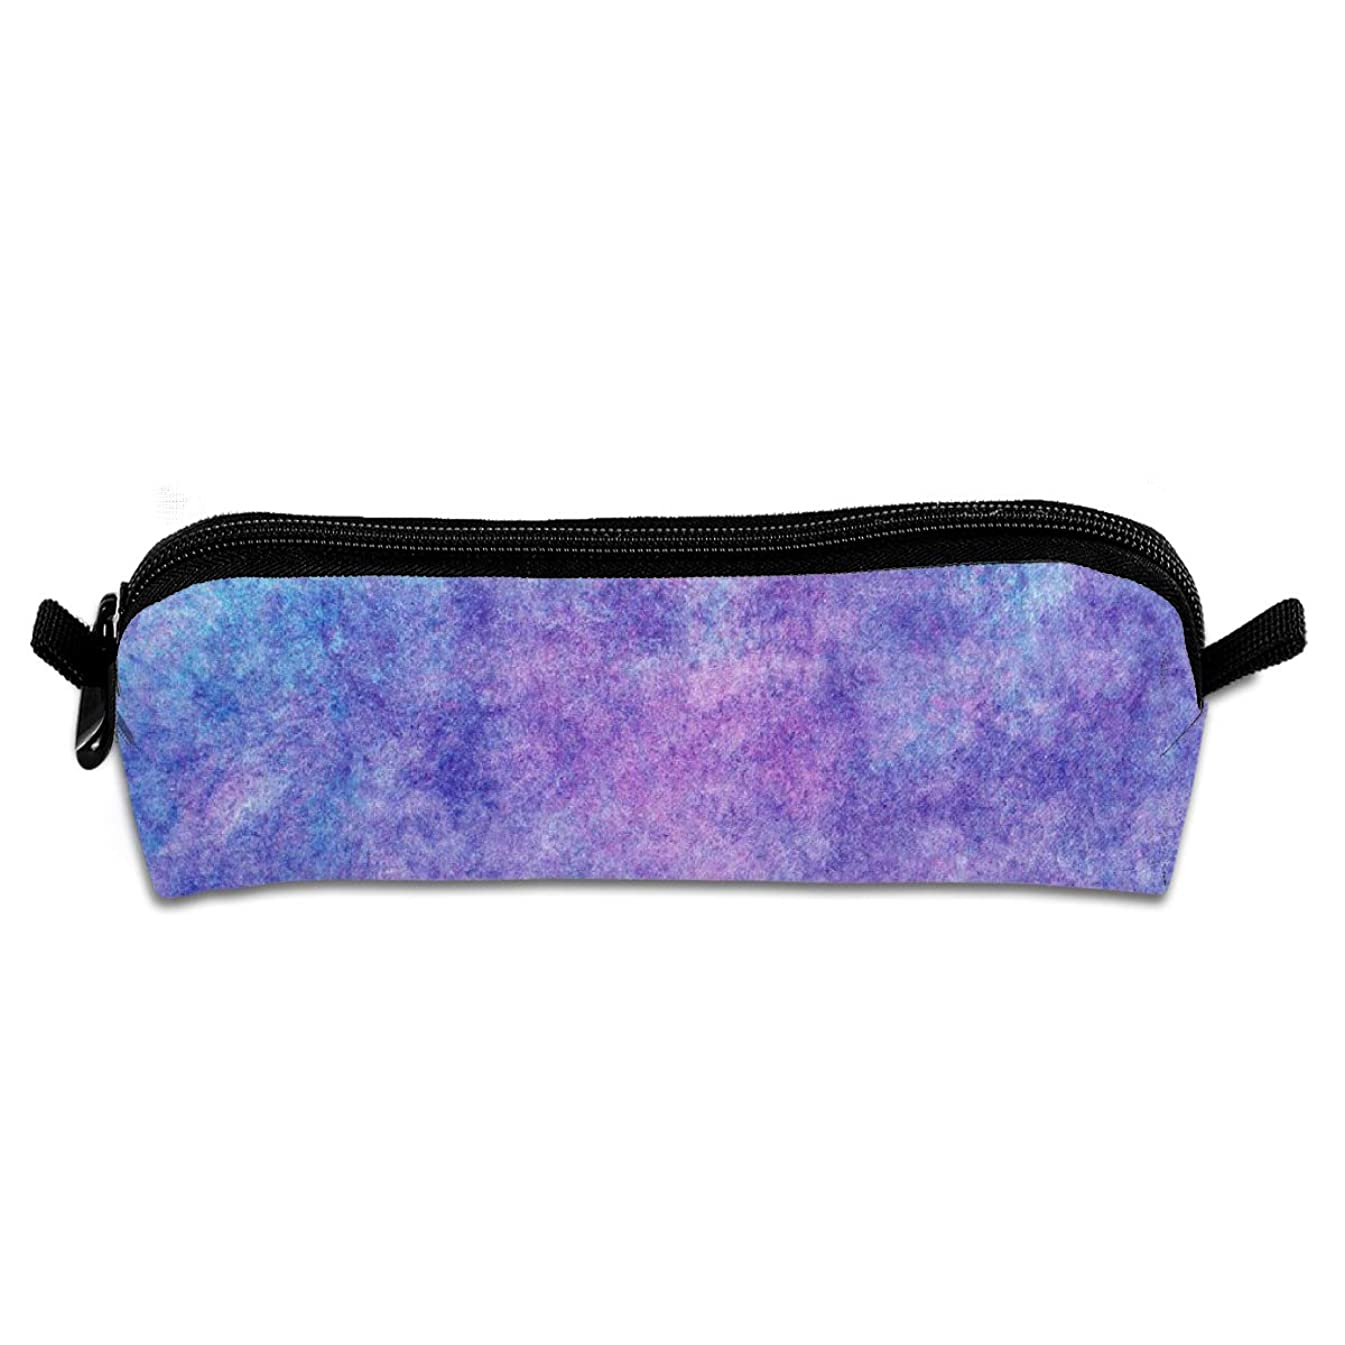 AZOULA Blue and Purple Texture Pencil Case Portable Durable Compact Pencil Bag with Zipper for School & Office Supplies